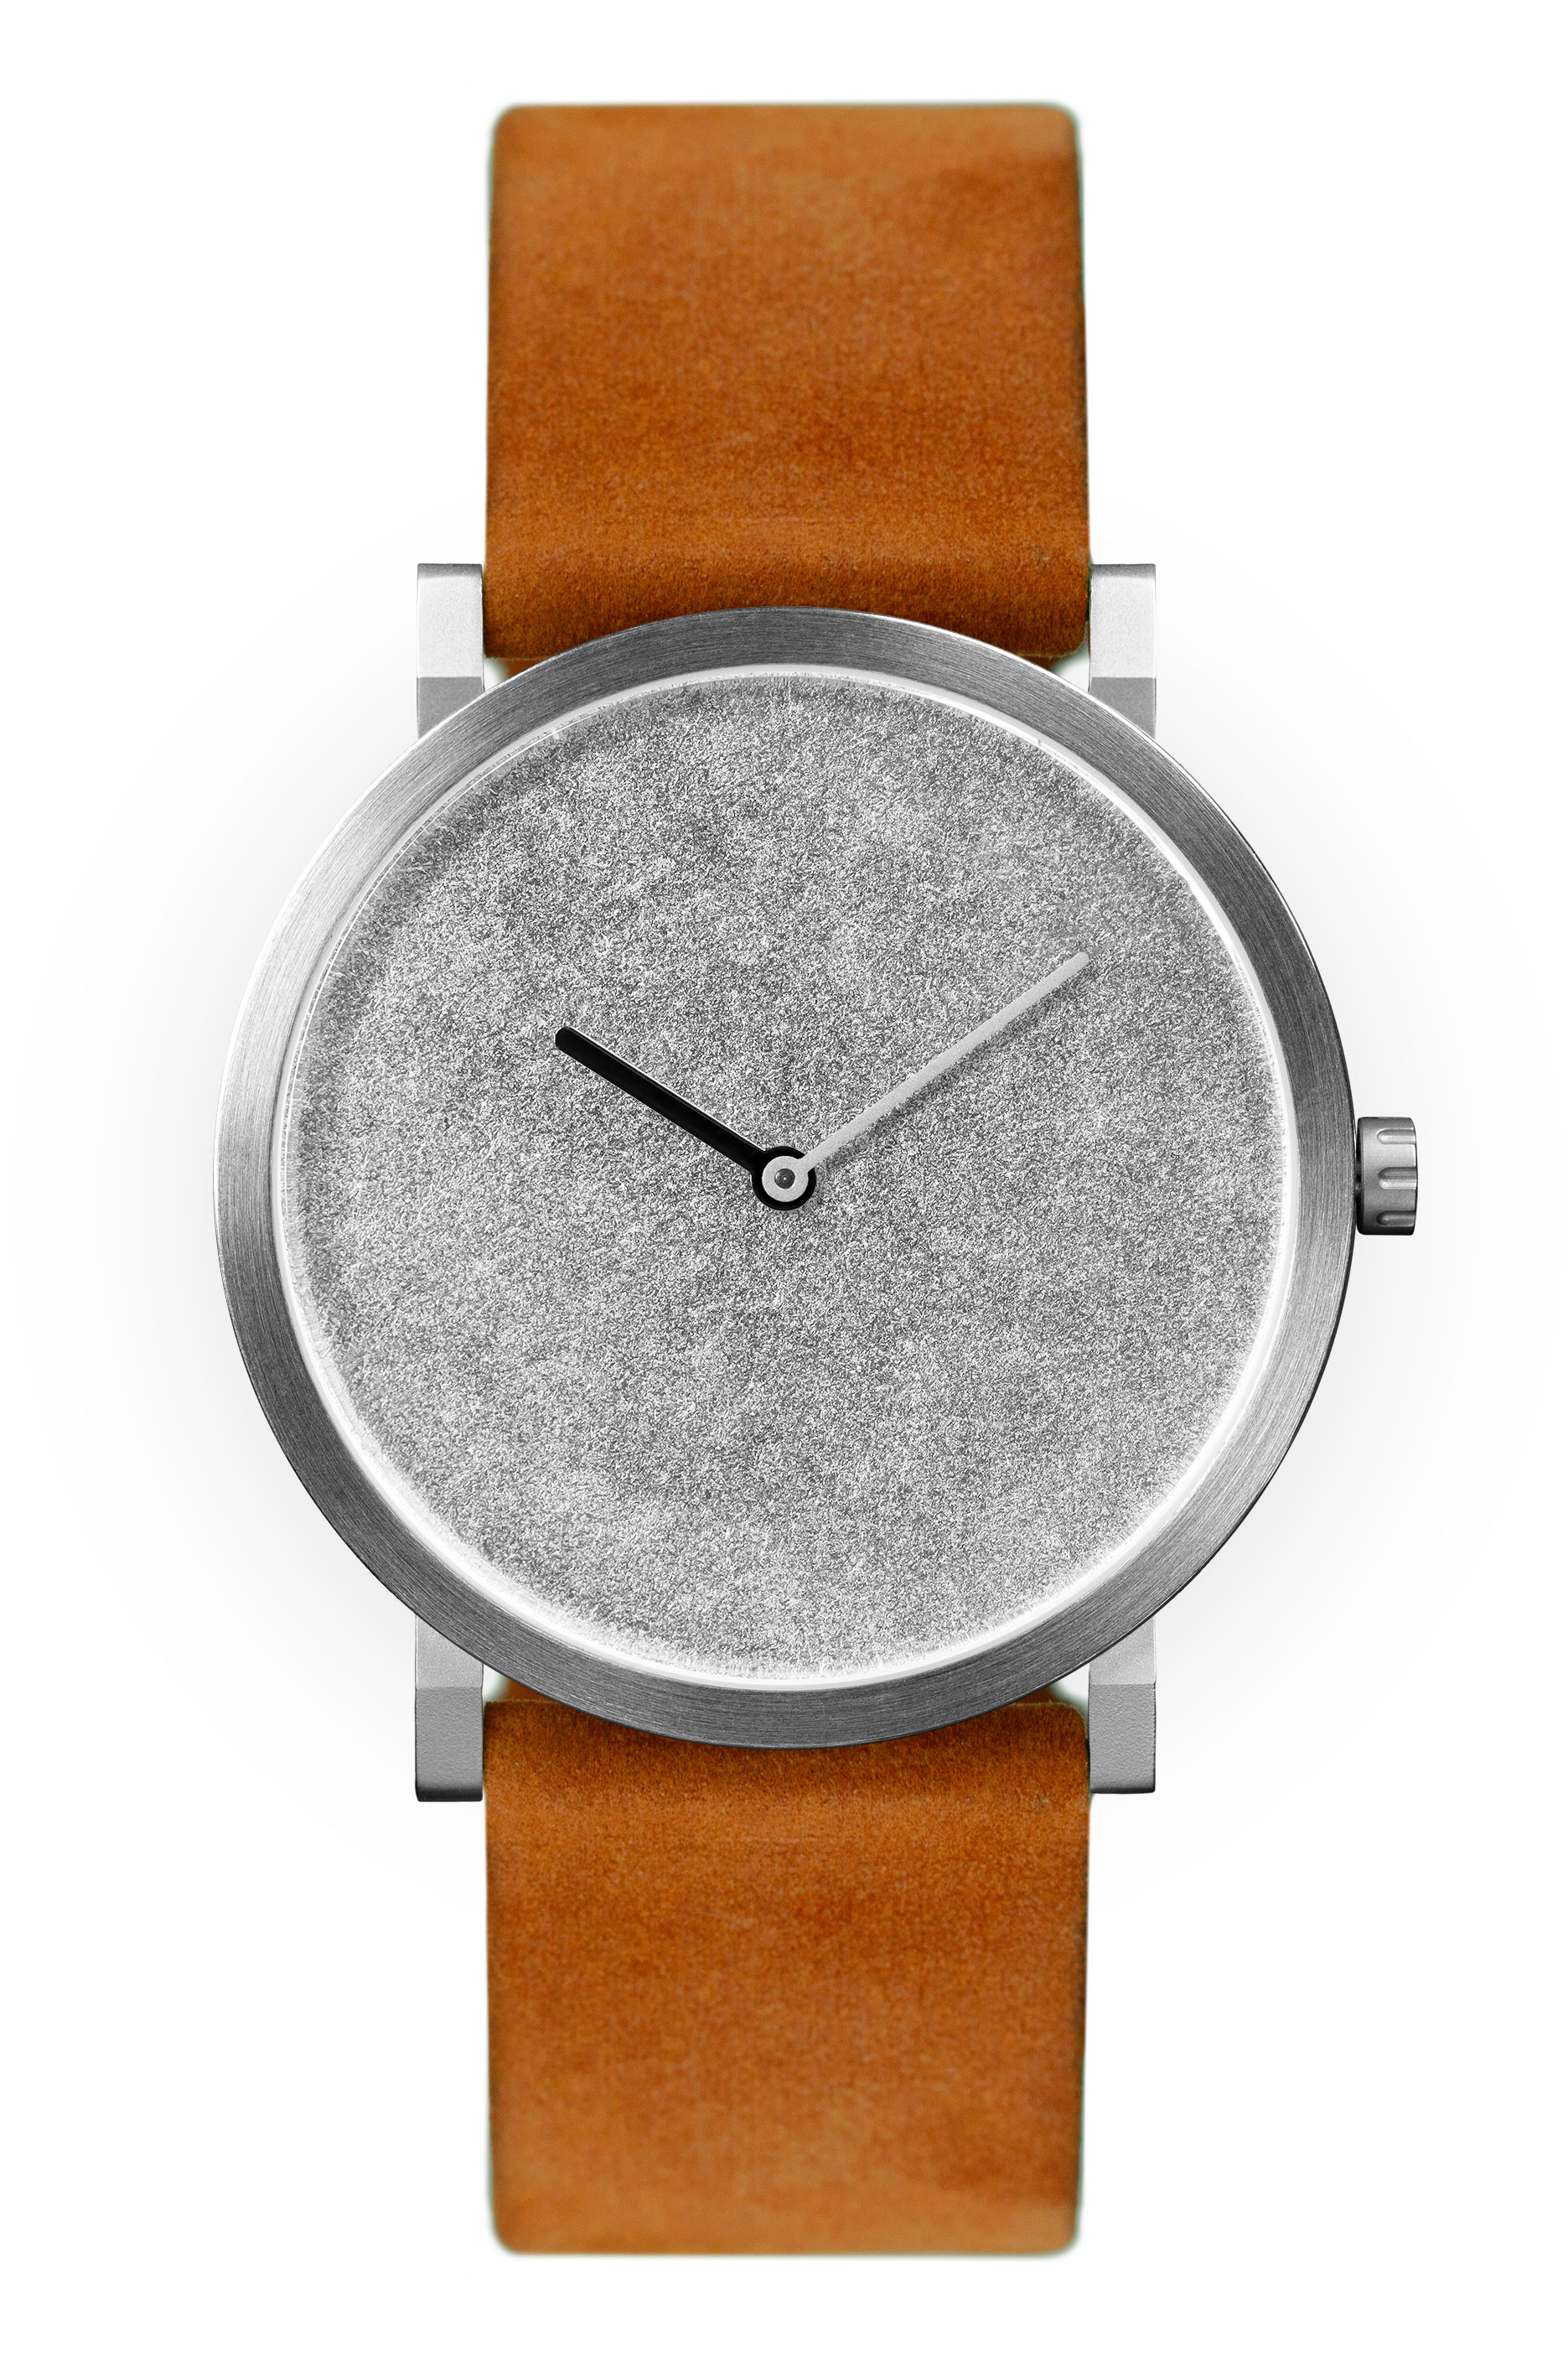 Palladium Leaf with Orange Leather Strap